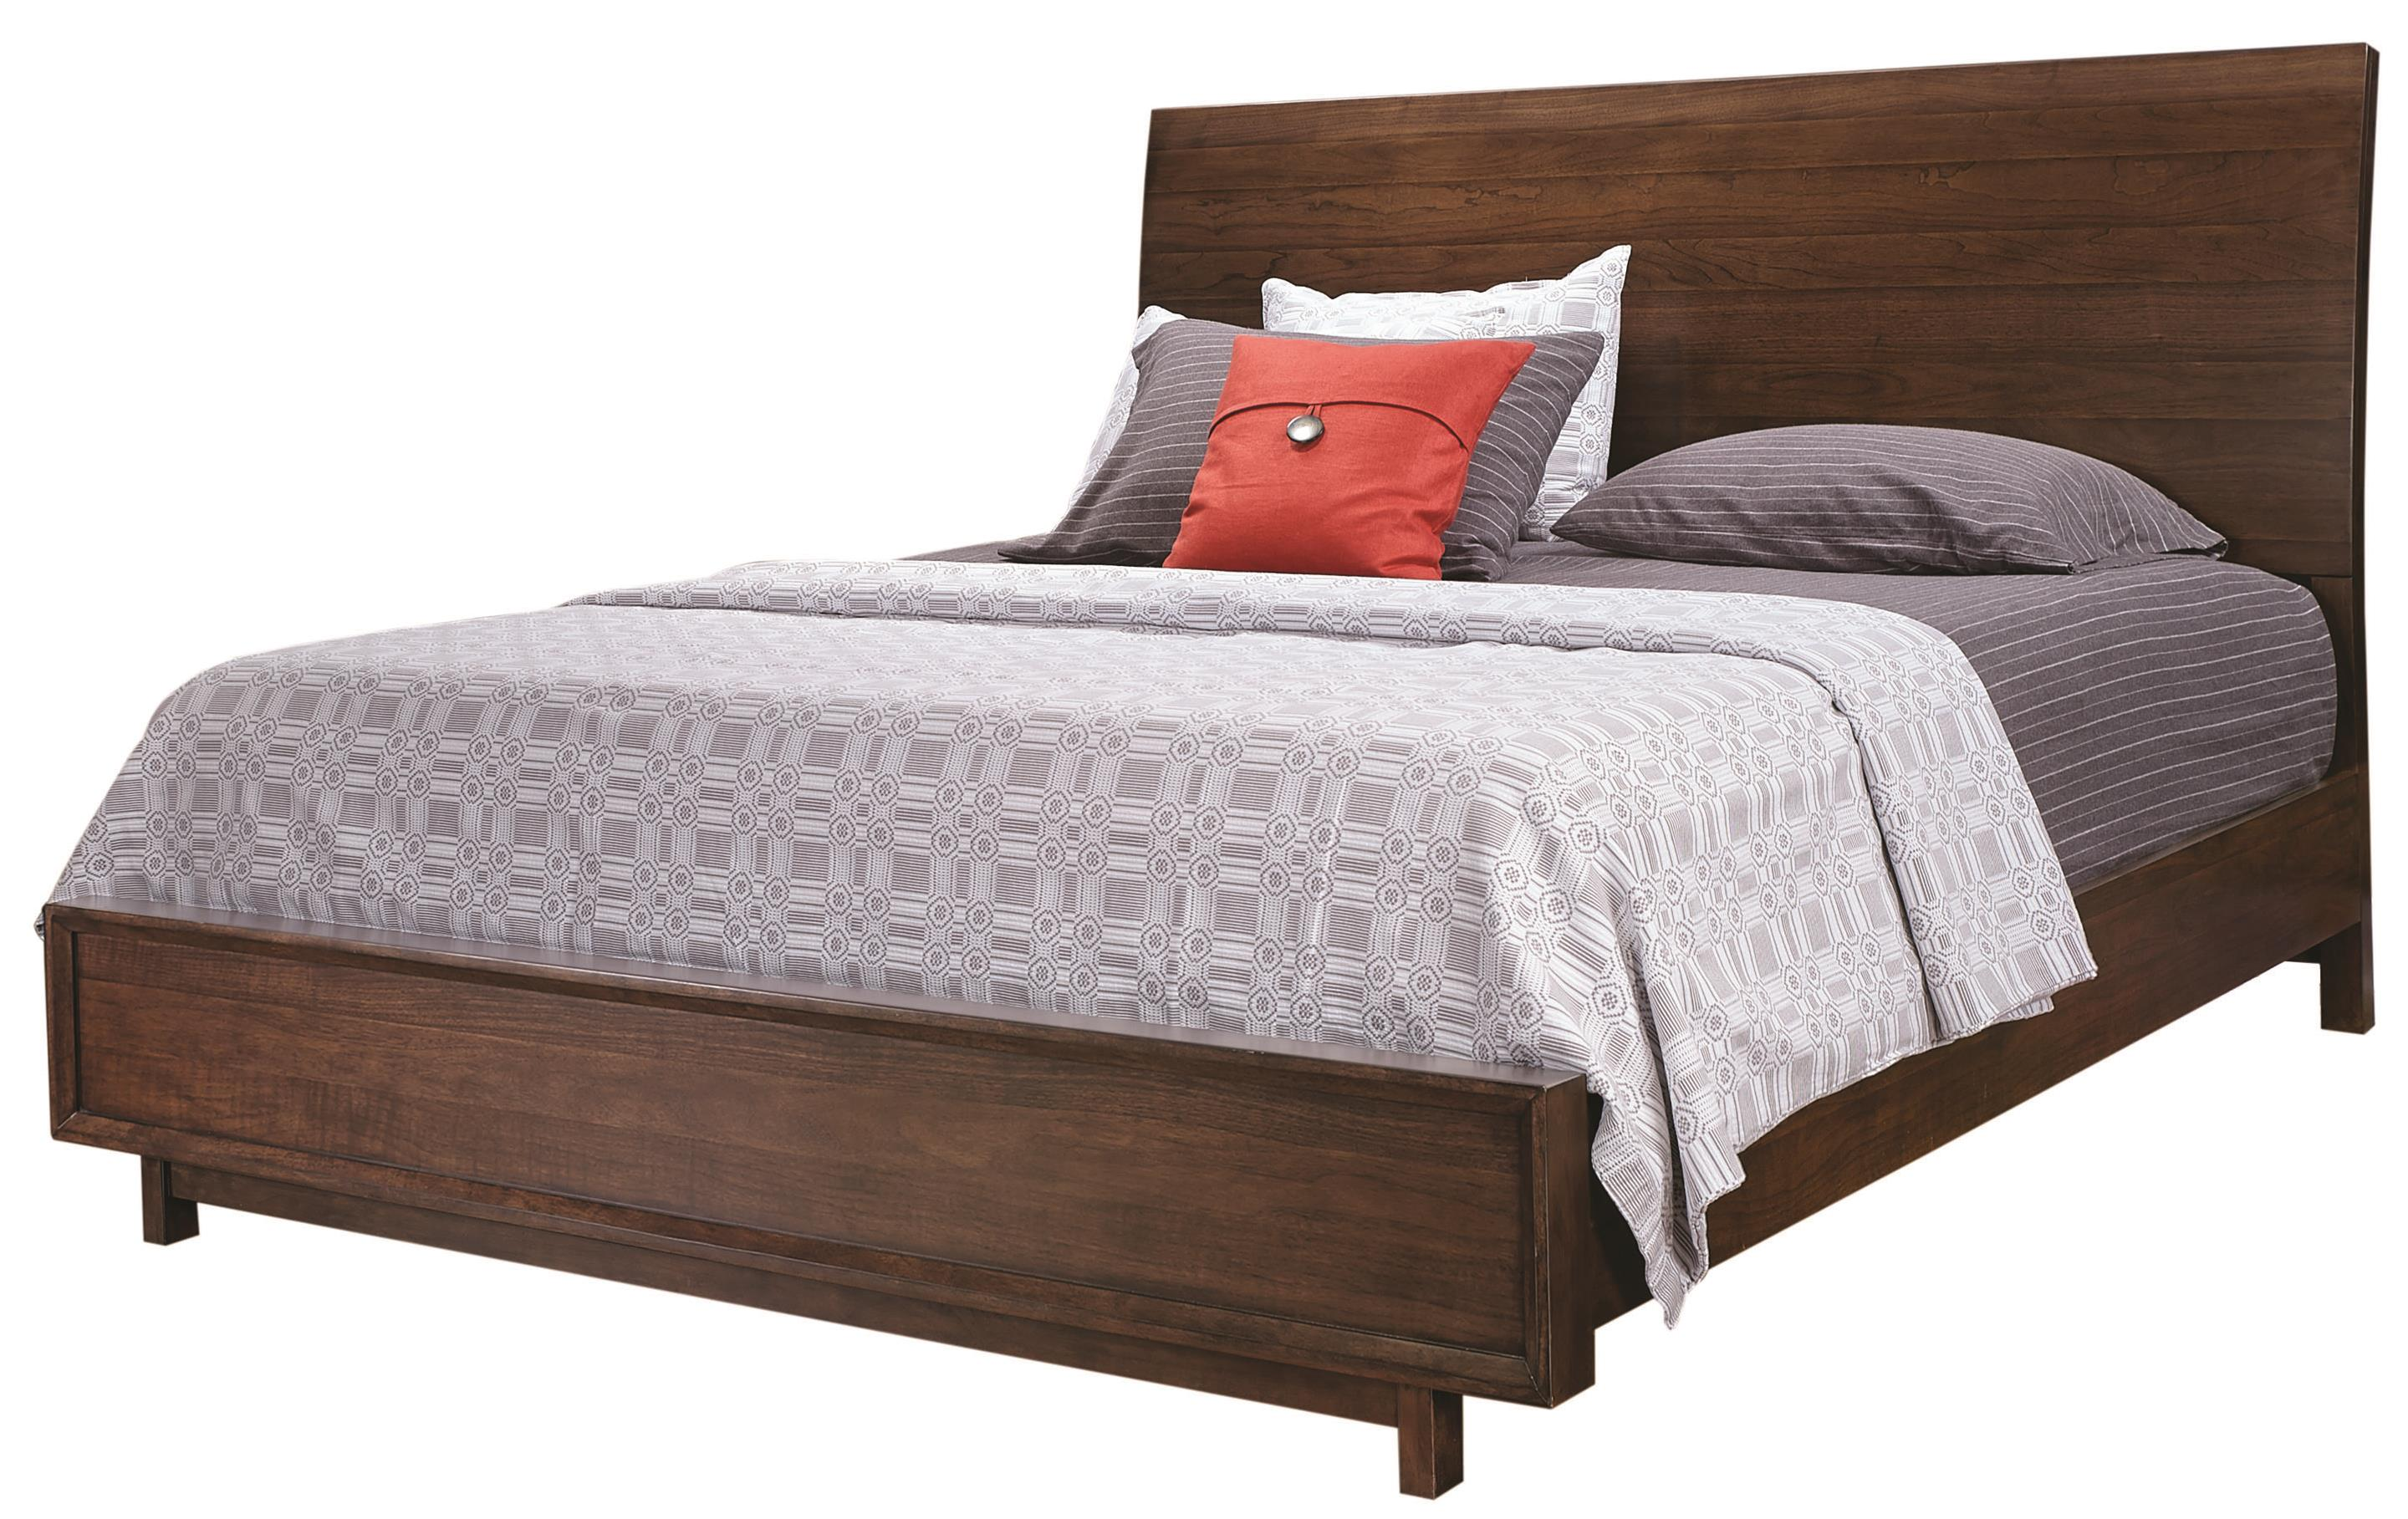 Aspenhome Walnut Heights Queen Sleigh Bed - Item Number: IWH-400+403+402